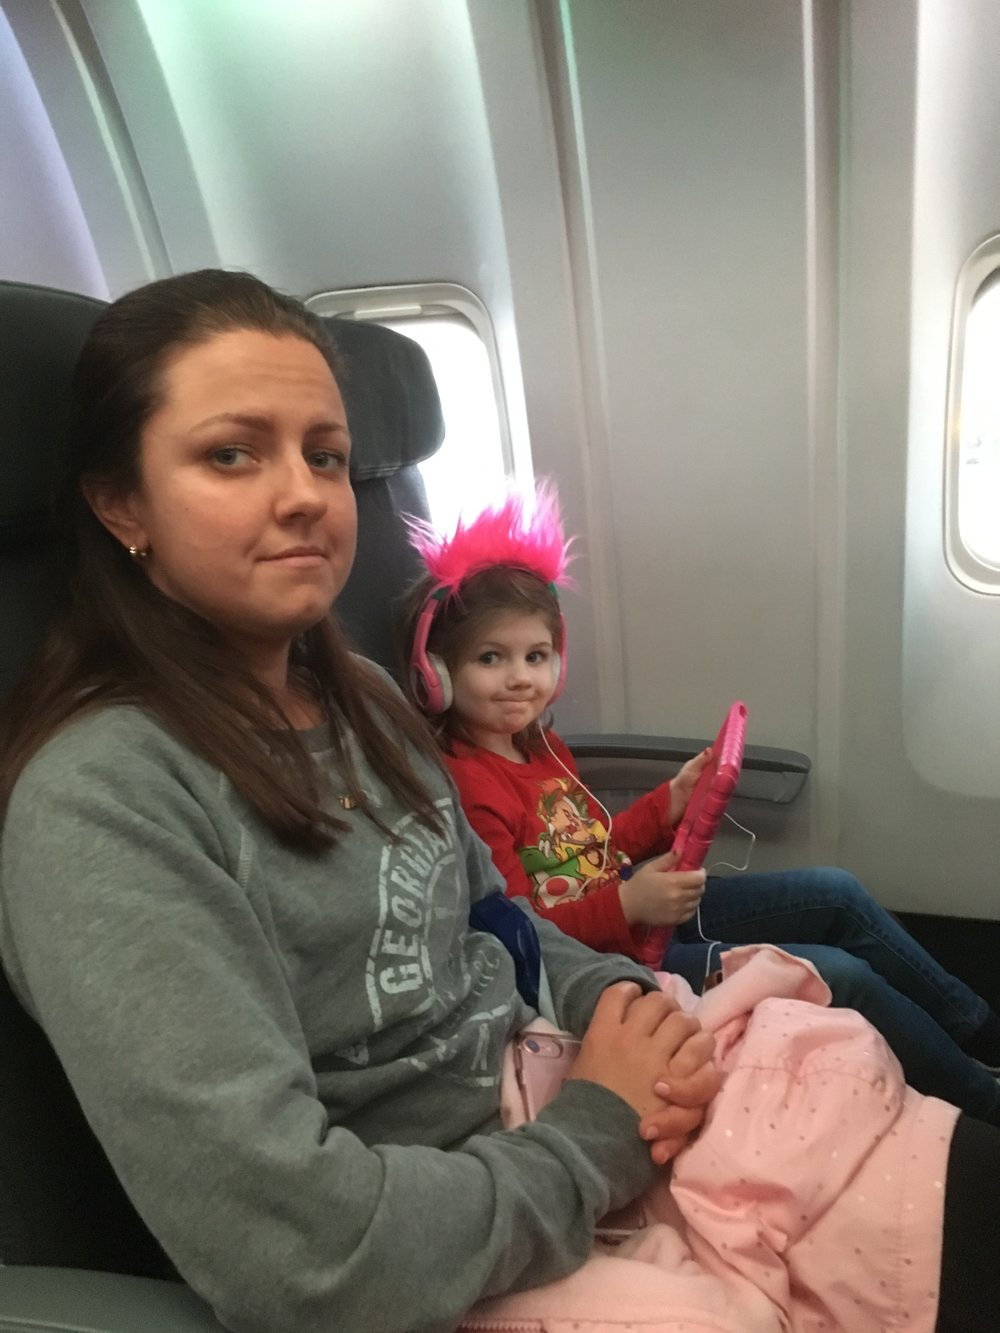 Morgan sat with his cousin, and Kendall was amazing ! She didn't even flinch the whole flight. She just wanted pizza LOL   ps - can you tell i'm terrified?!